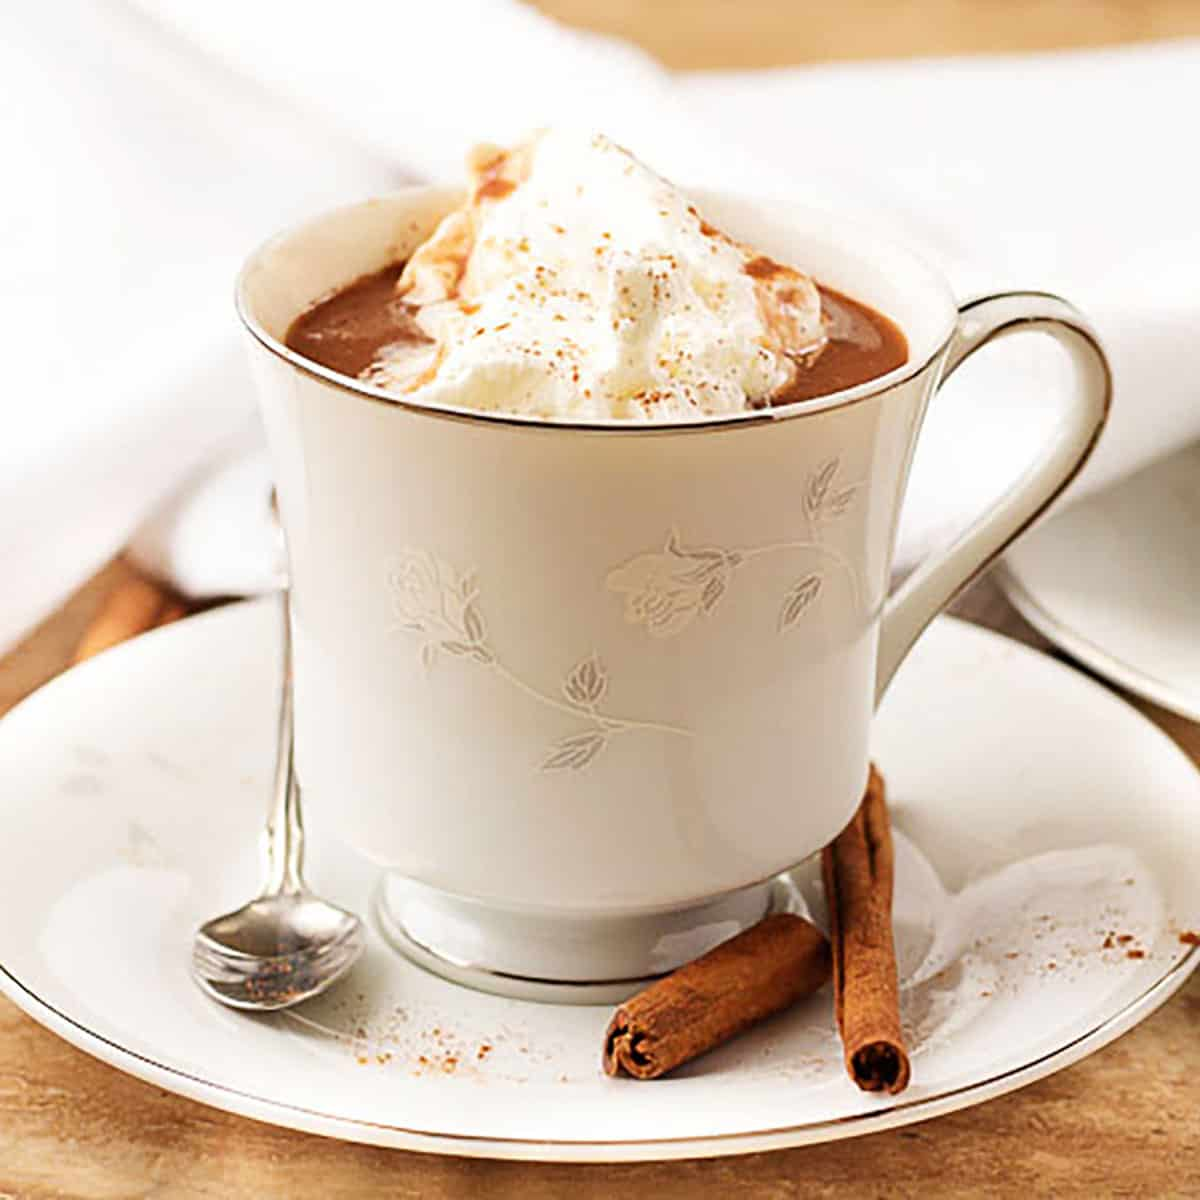 Hot cocoa in a white cup with homemade whipped cream and cinnamon sticks.